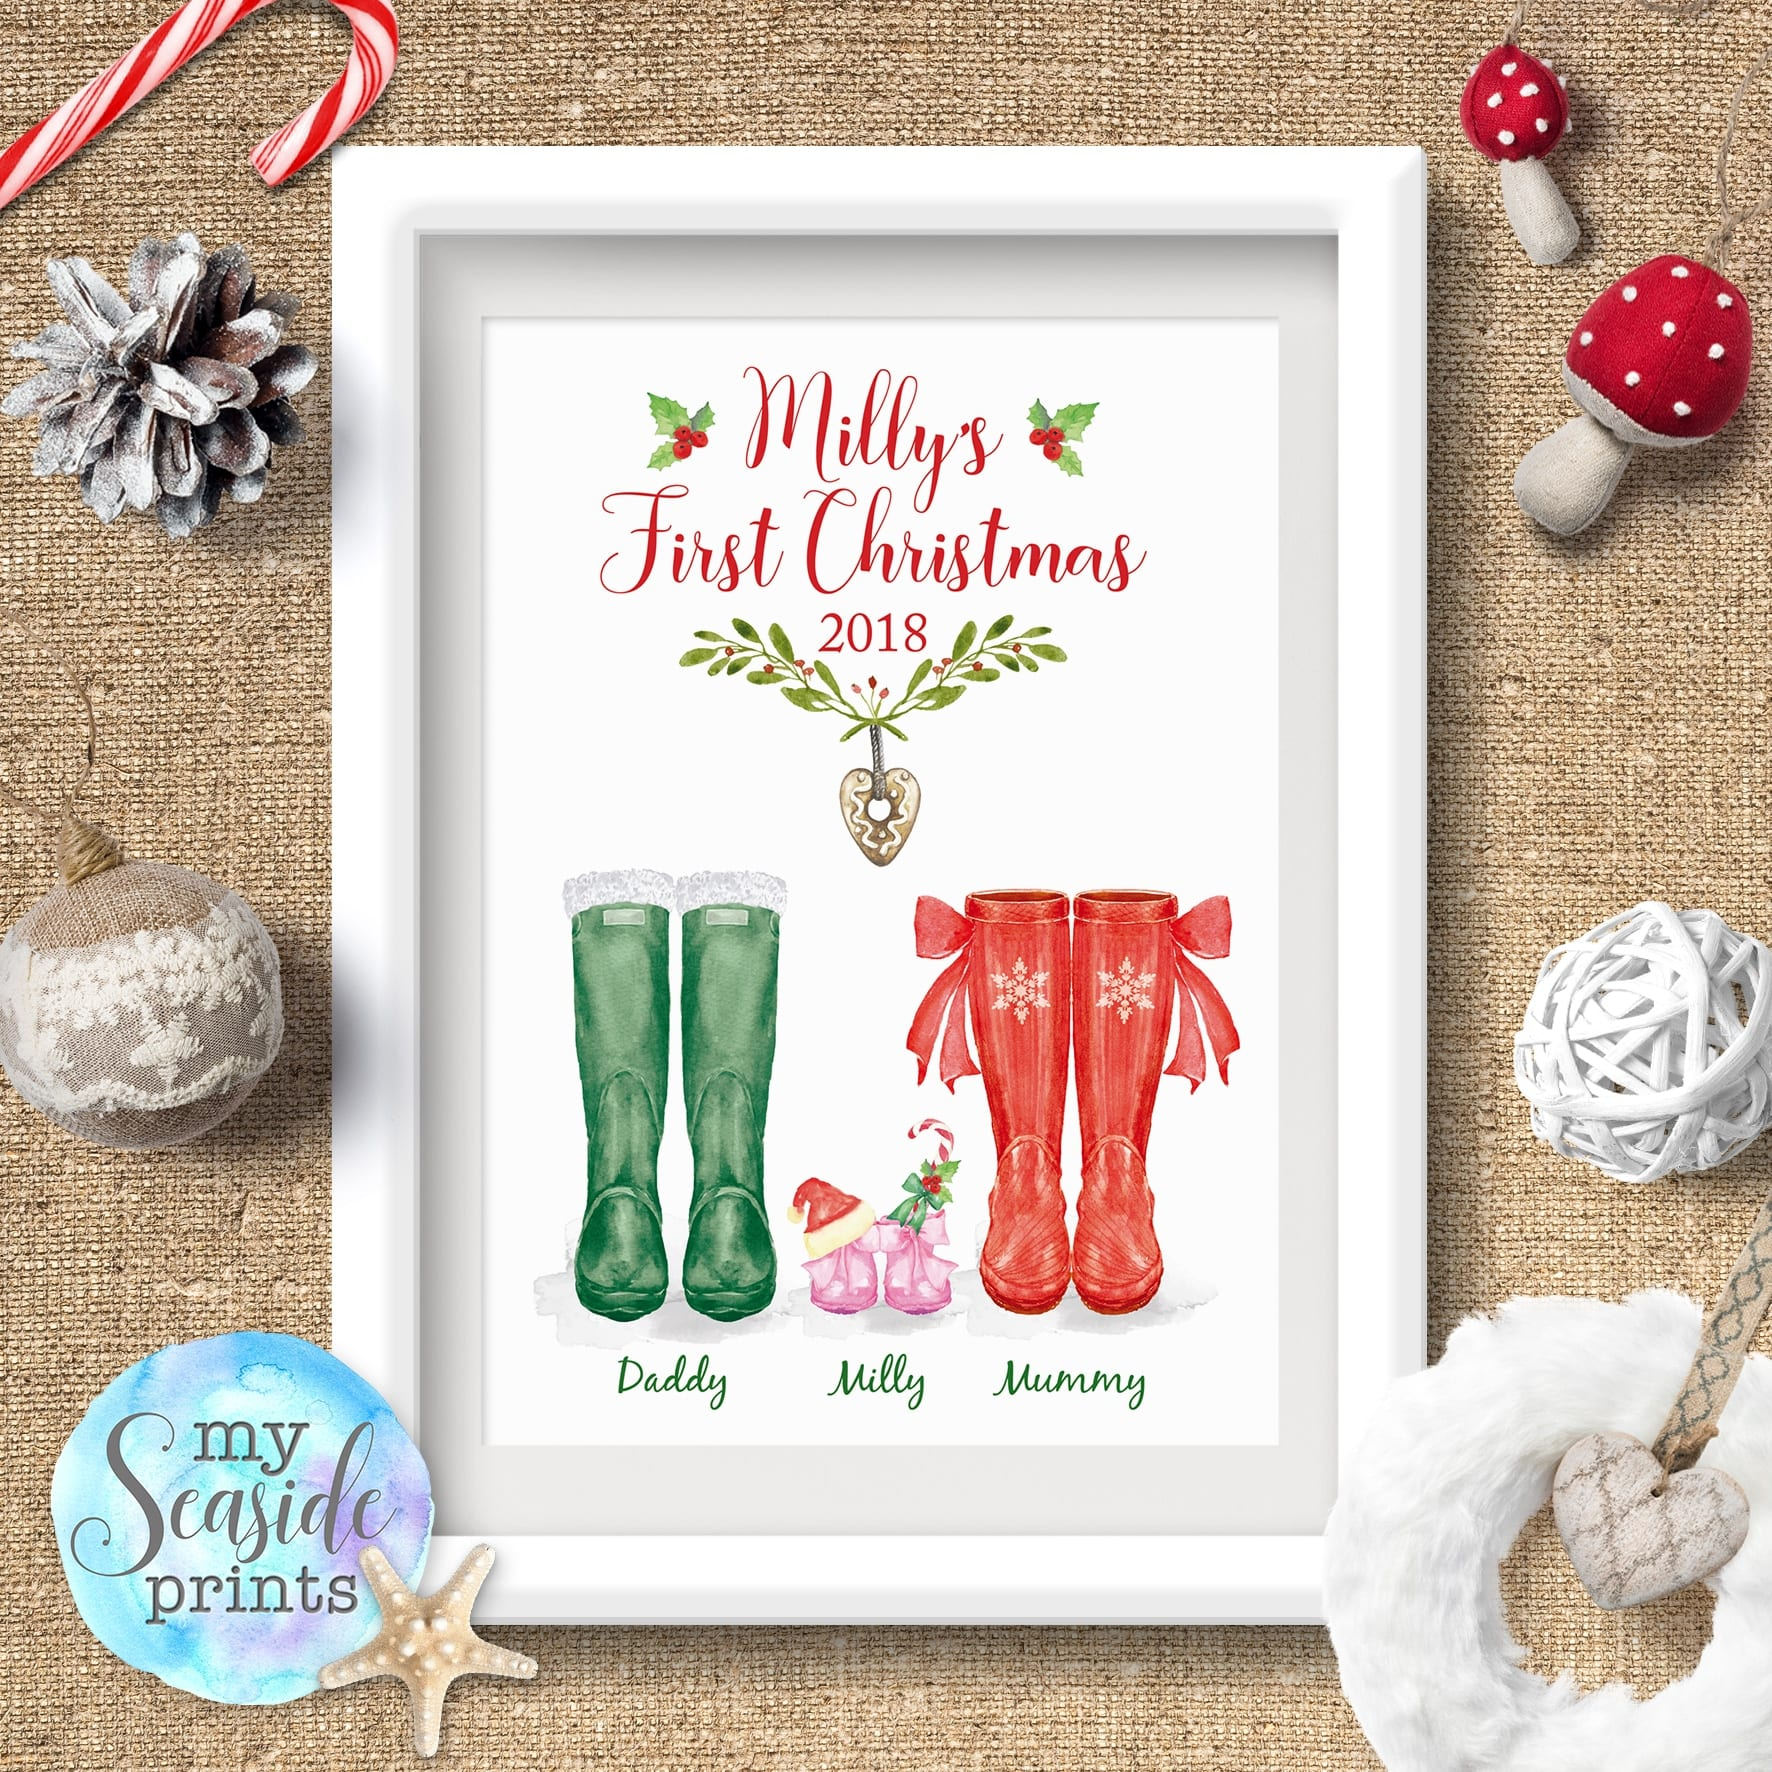 Baby\'s First Christmas wellington boot family print - My Seaside Prints